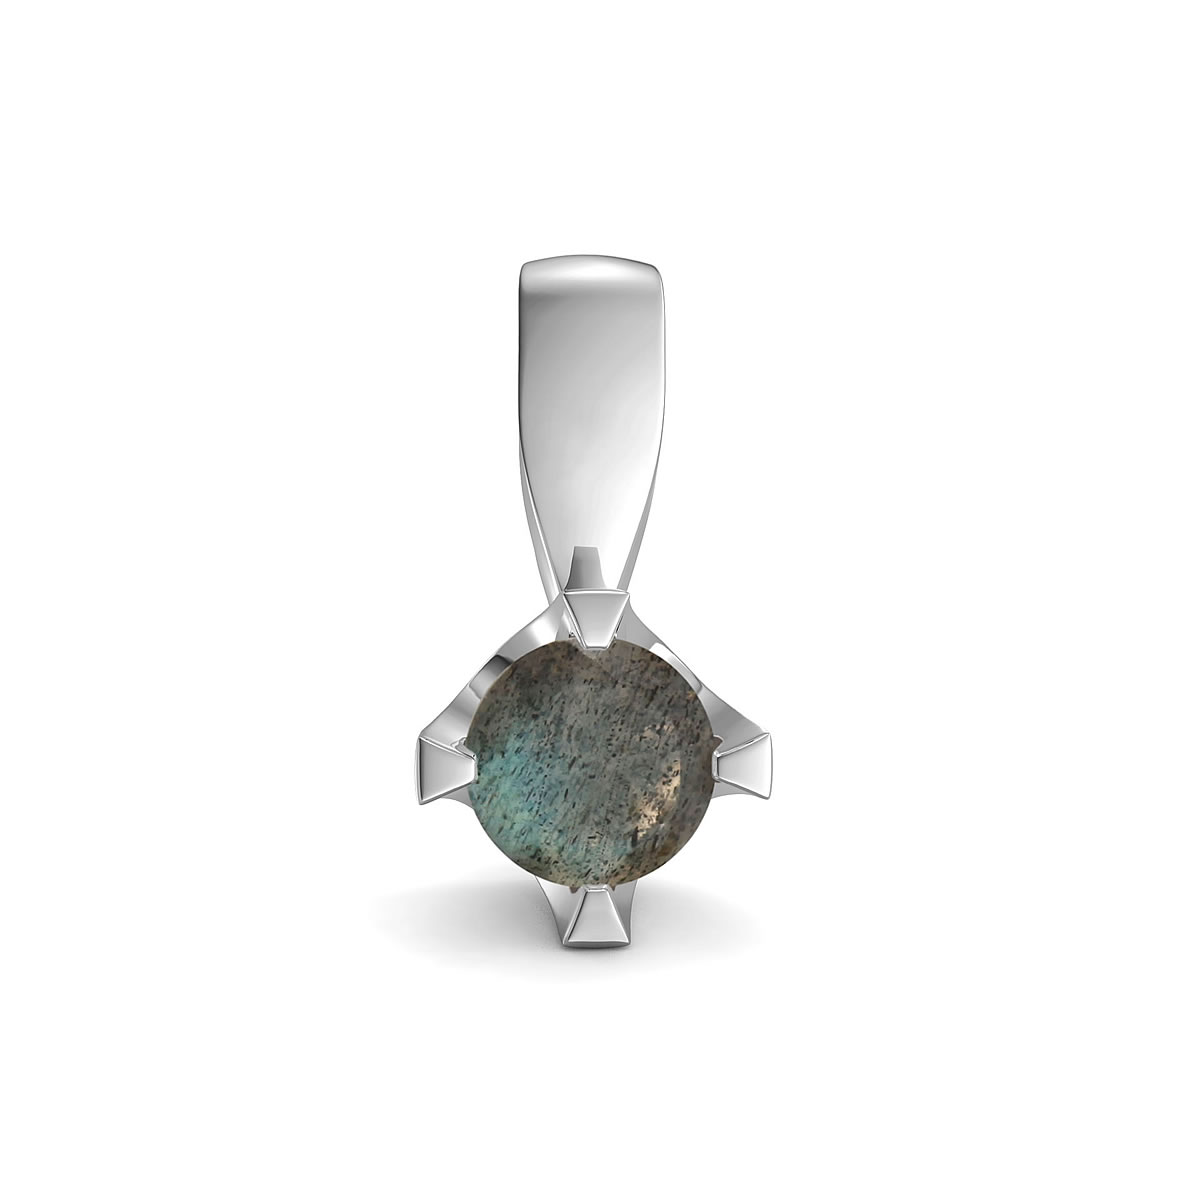 Elegant pendant in sterling silver with a labradorite